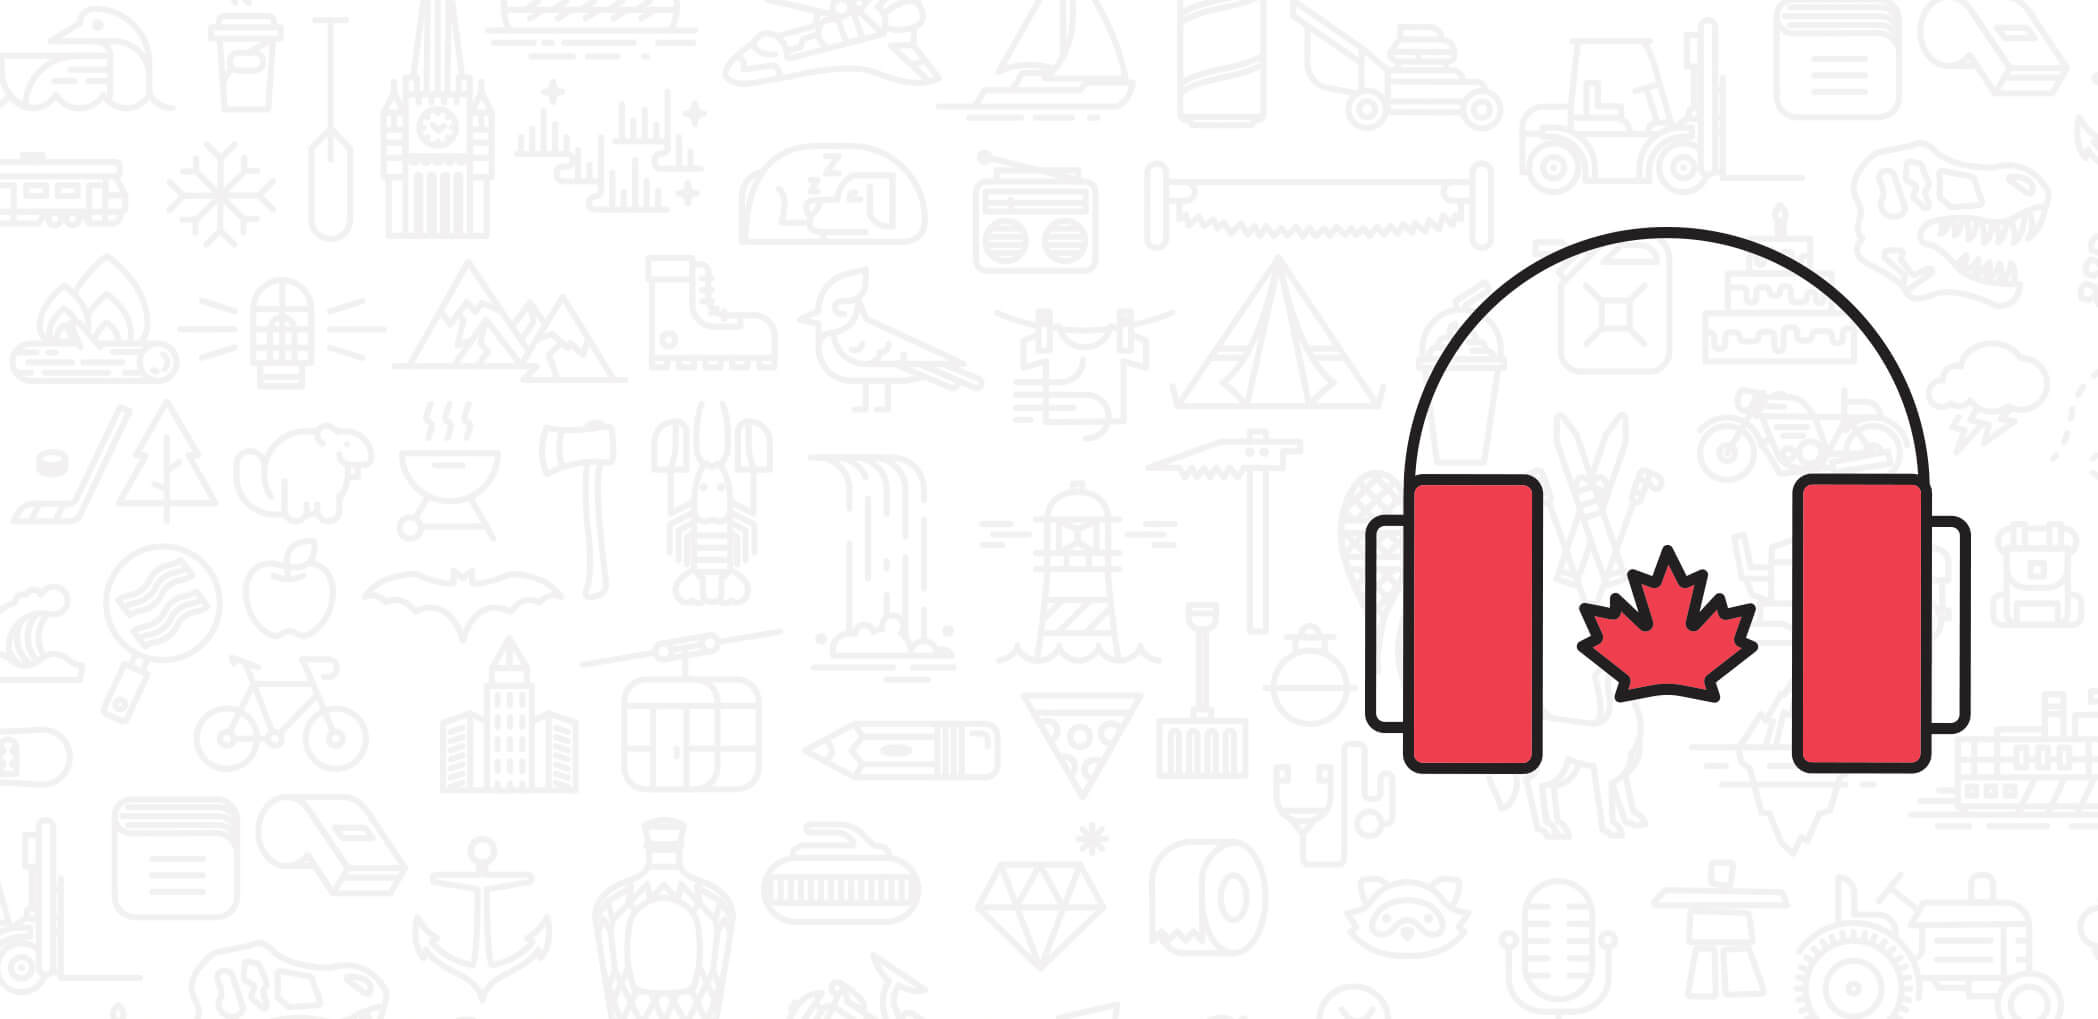 Light image of icons with large illustrated headphones